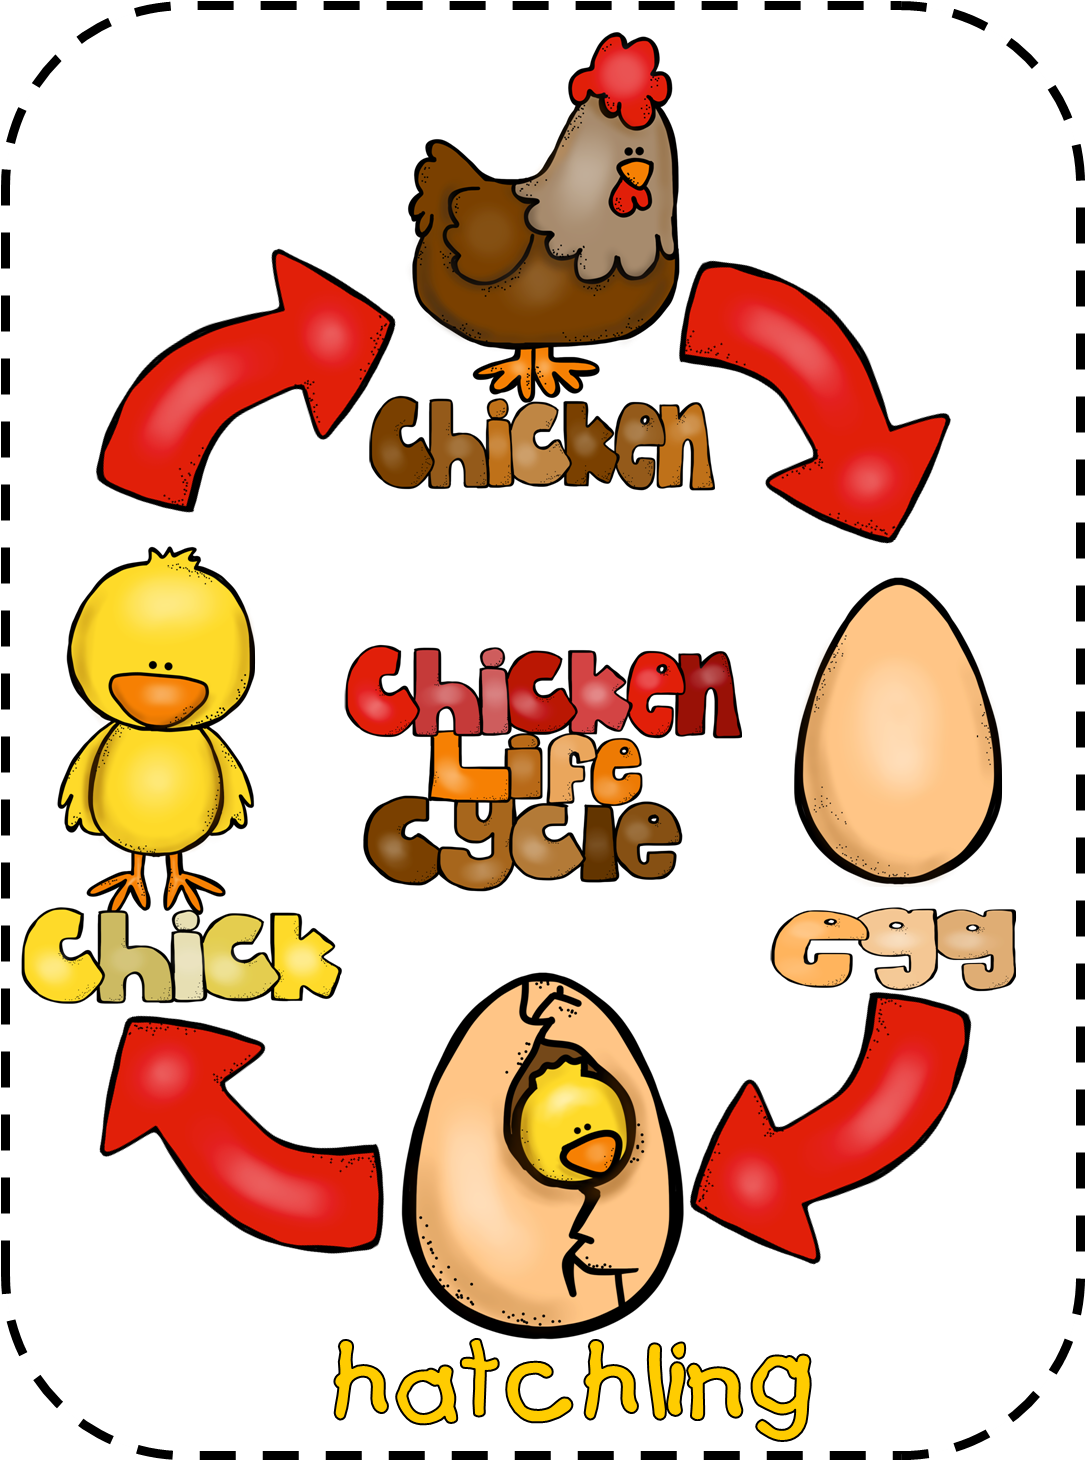 picture about Life Cycle of a Chicken Printable named Very first Quality Wow: Animal Toes and Chook Daily life Cycle